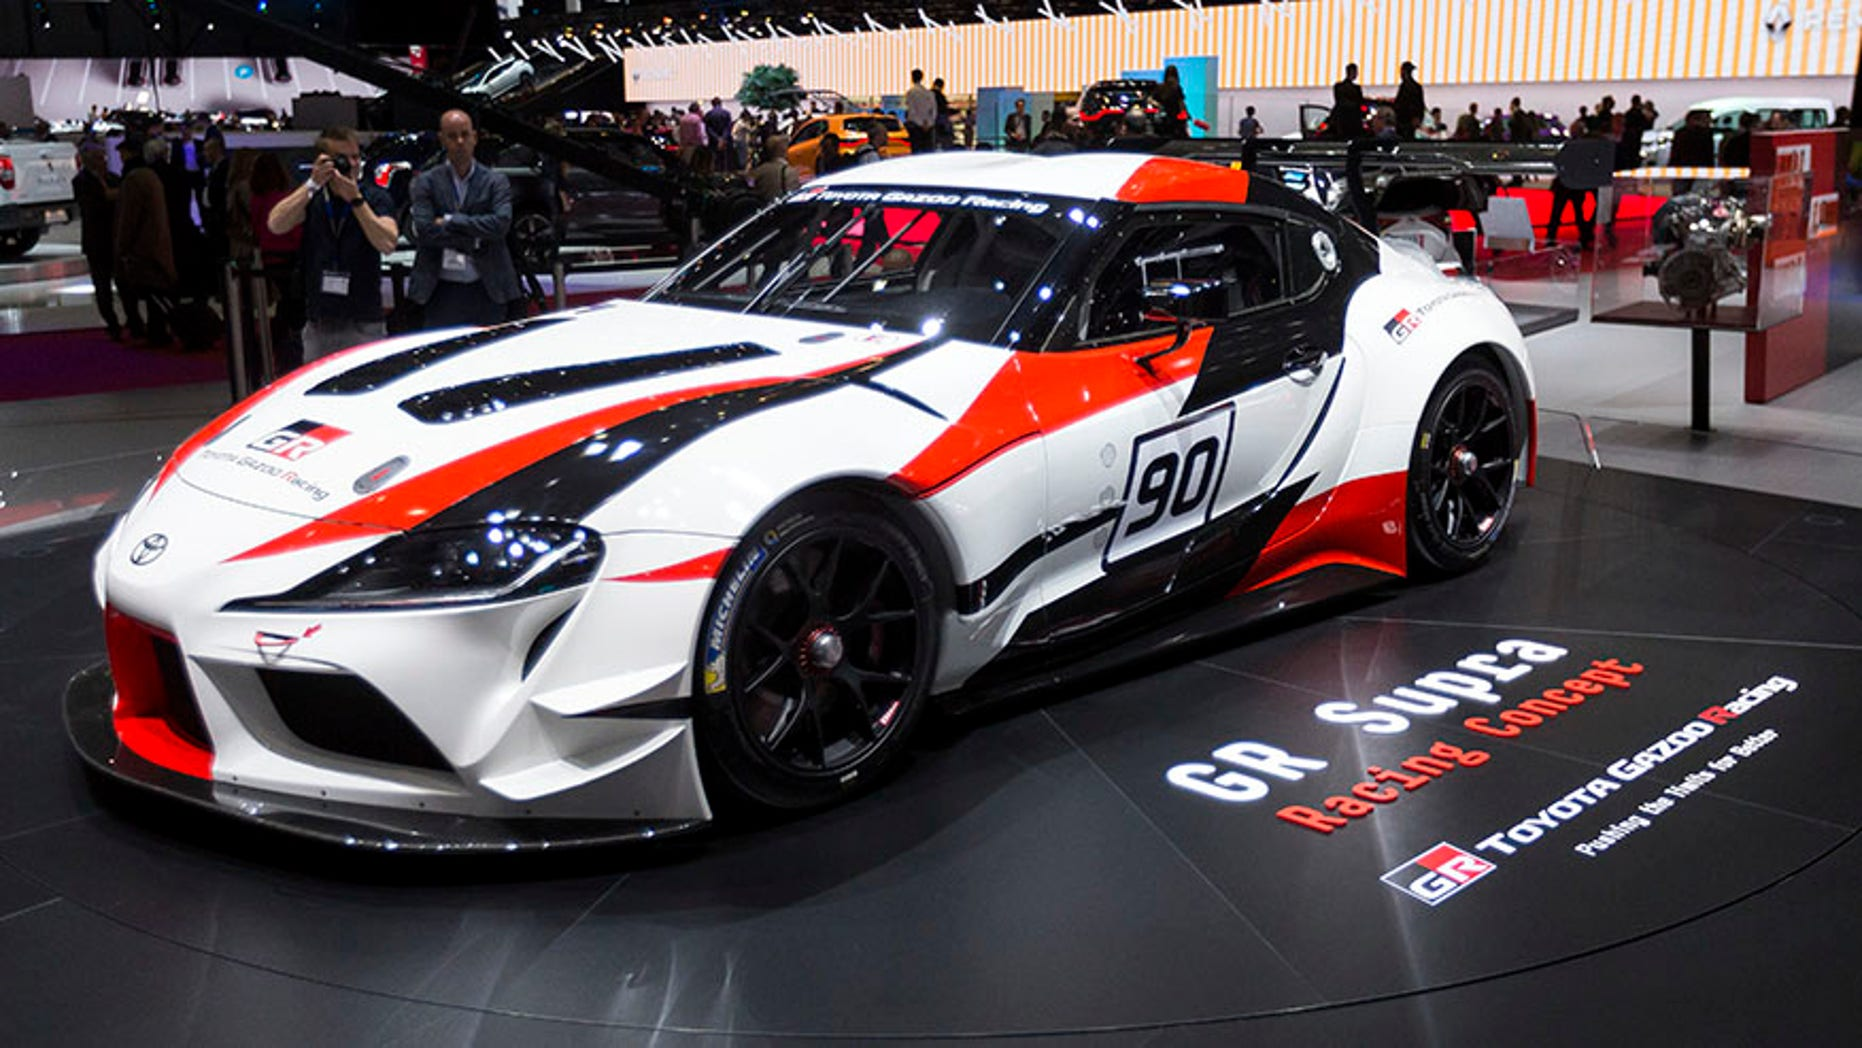 The GR Supra Concept is the first official sneak peek at the production version of Toyota's reborn sports car.